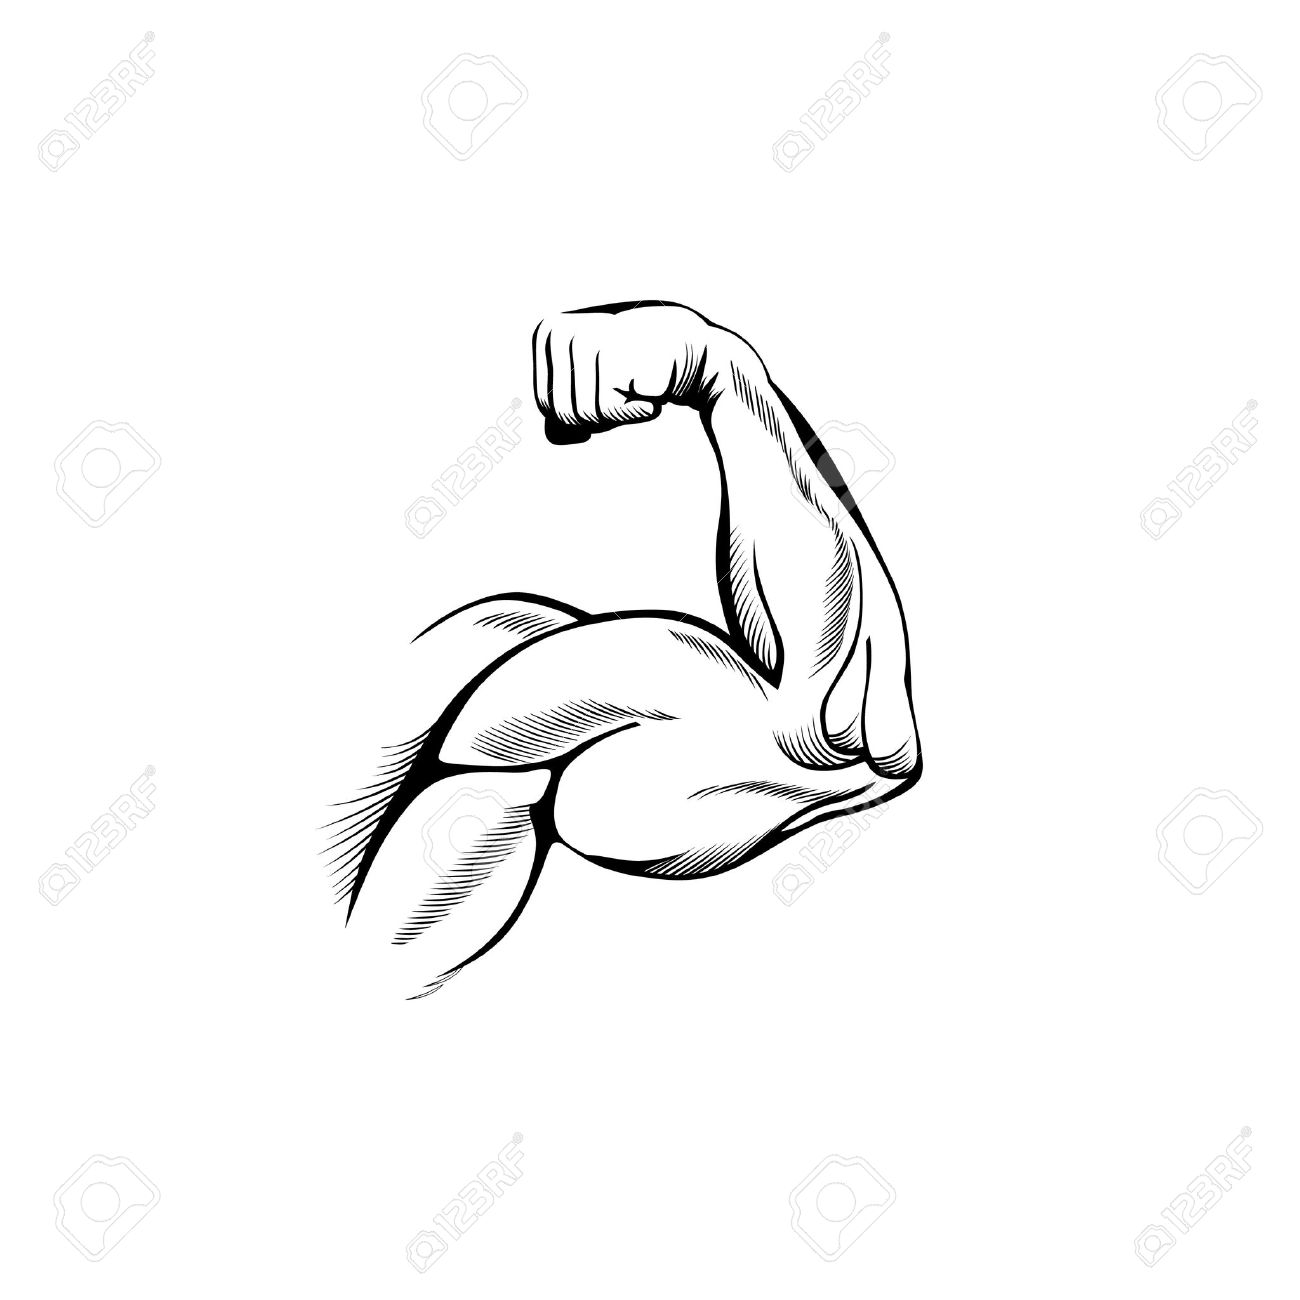 Muscles clipart drawing arm. Muscle at getdrawings com